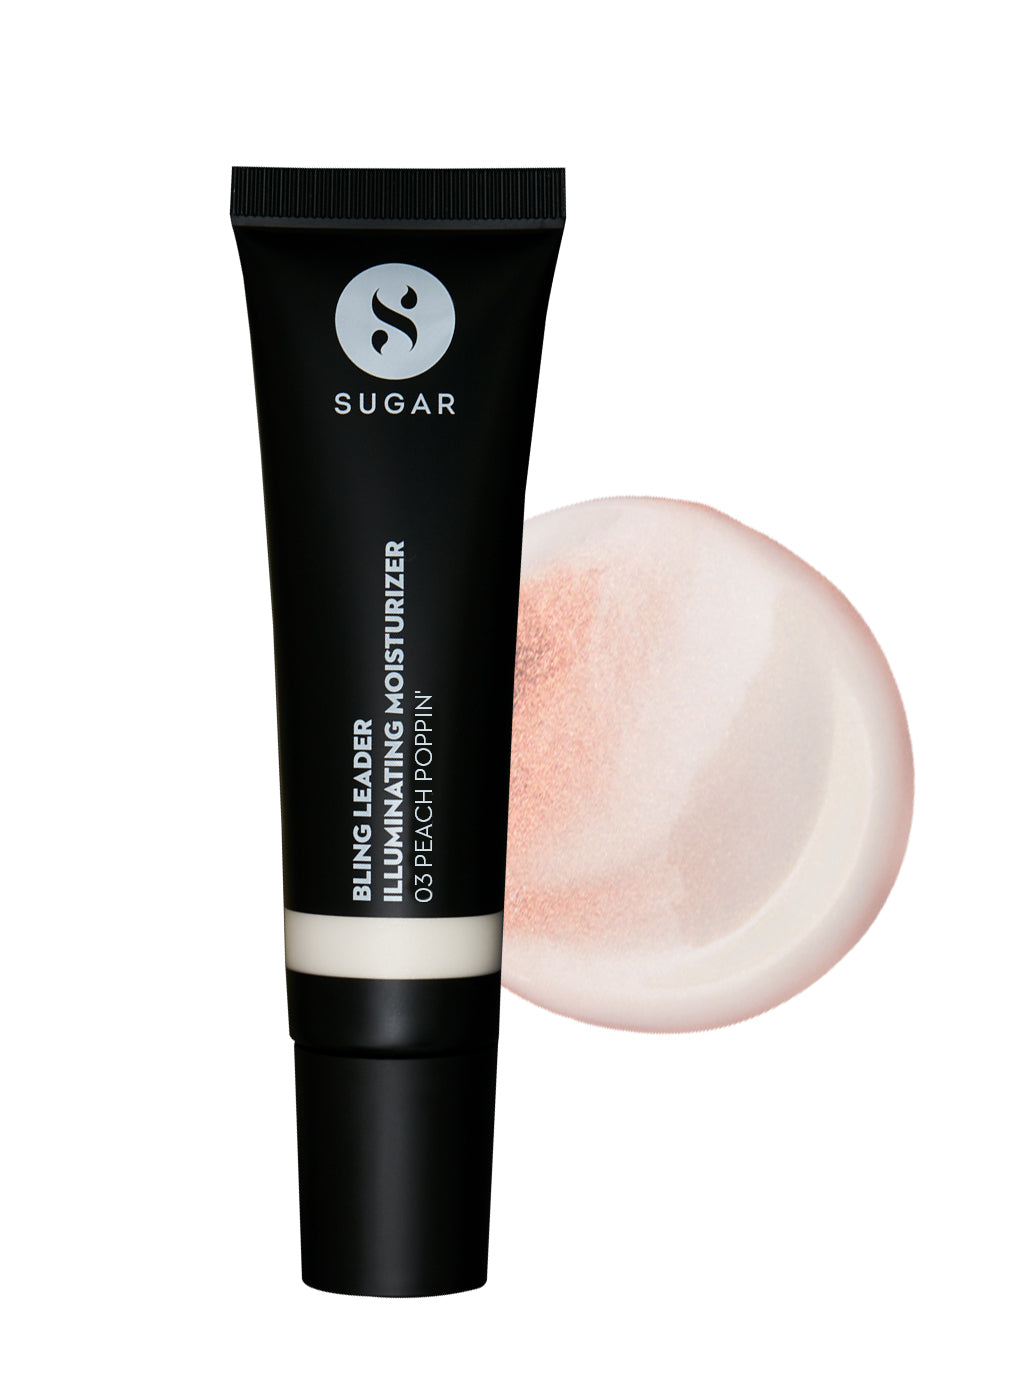 SUGAR Bling Leader Illuminating Moisturizer - 03 Peach Poppin' - Warm peach with a pearl finish